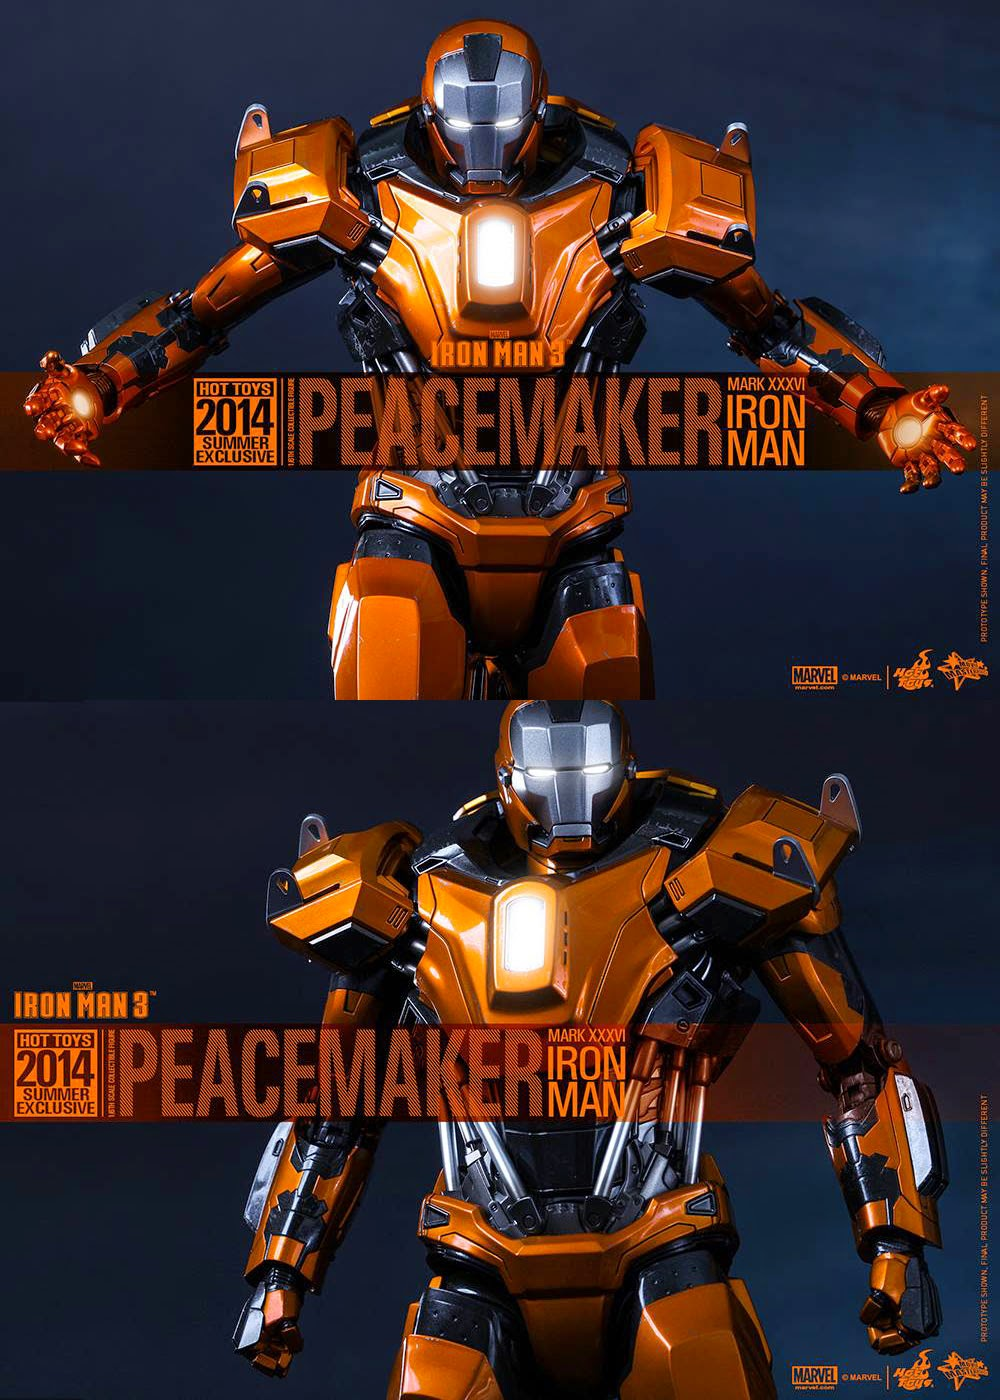 Iron Man 3 16th Scale Peacemaker Mark XXXVI By Hot Toys To Debut At Singapore Toy Games